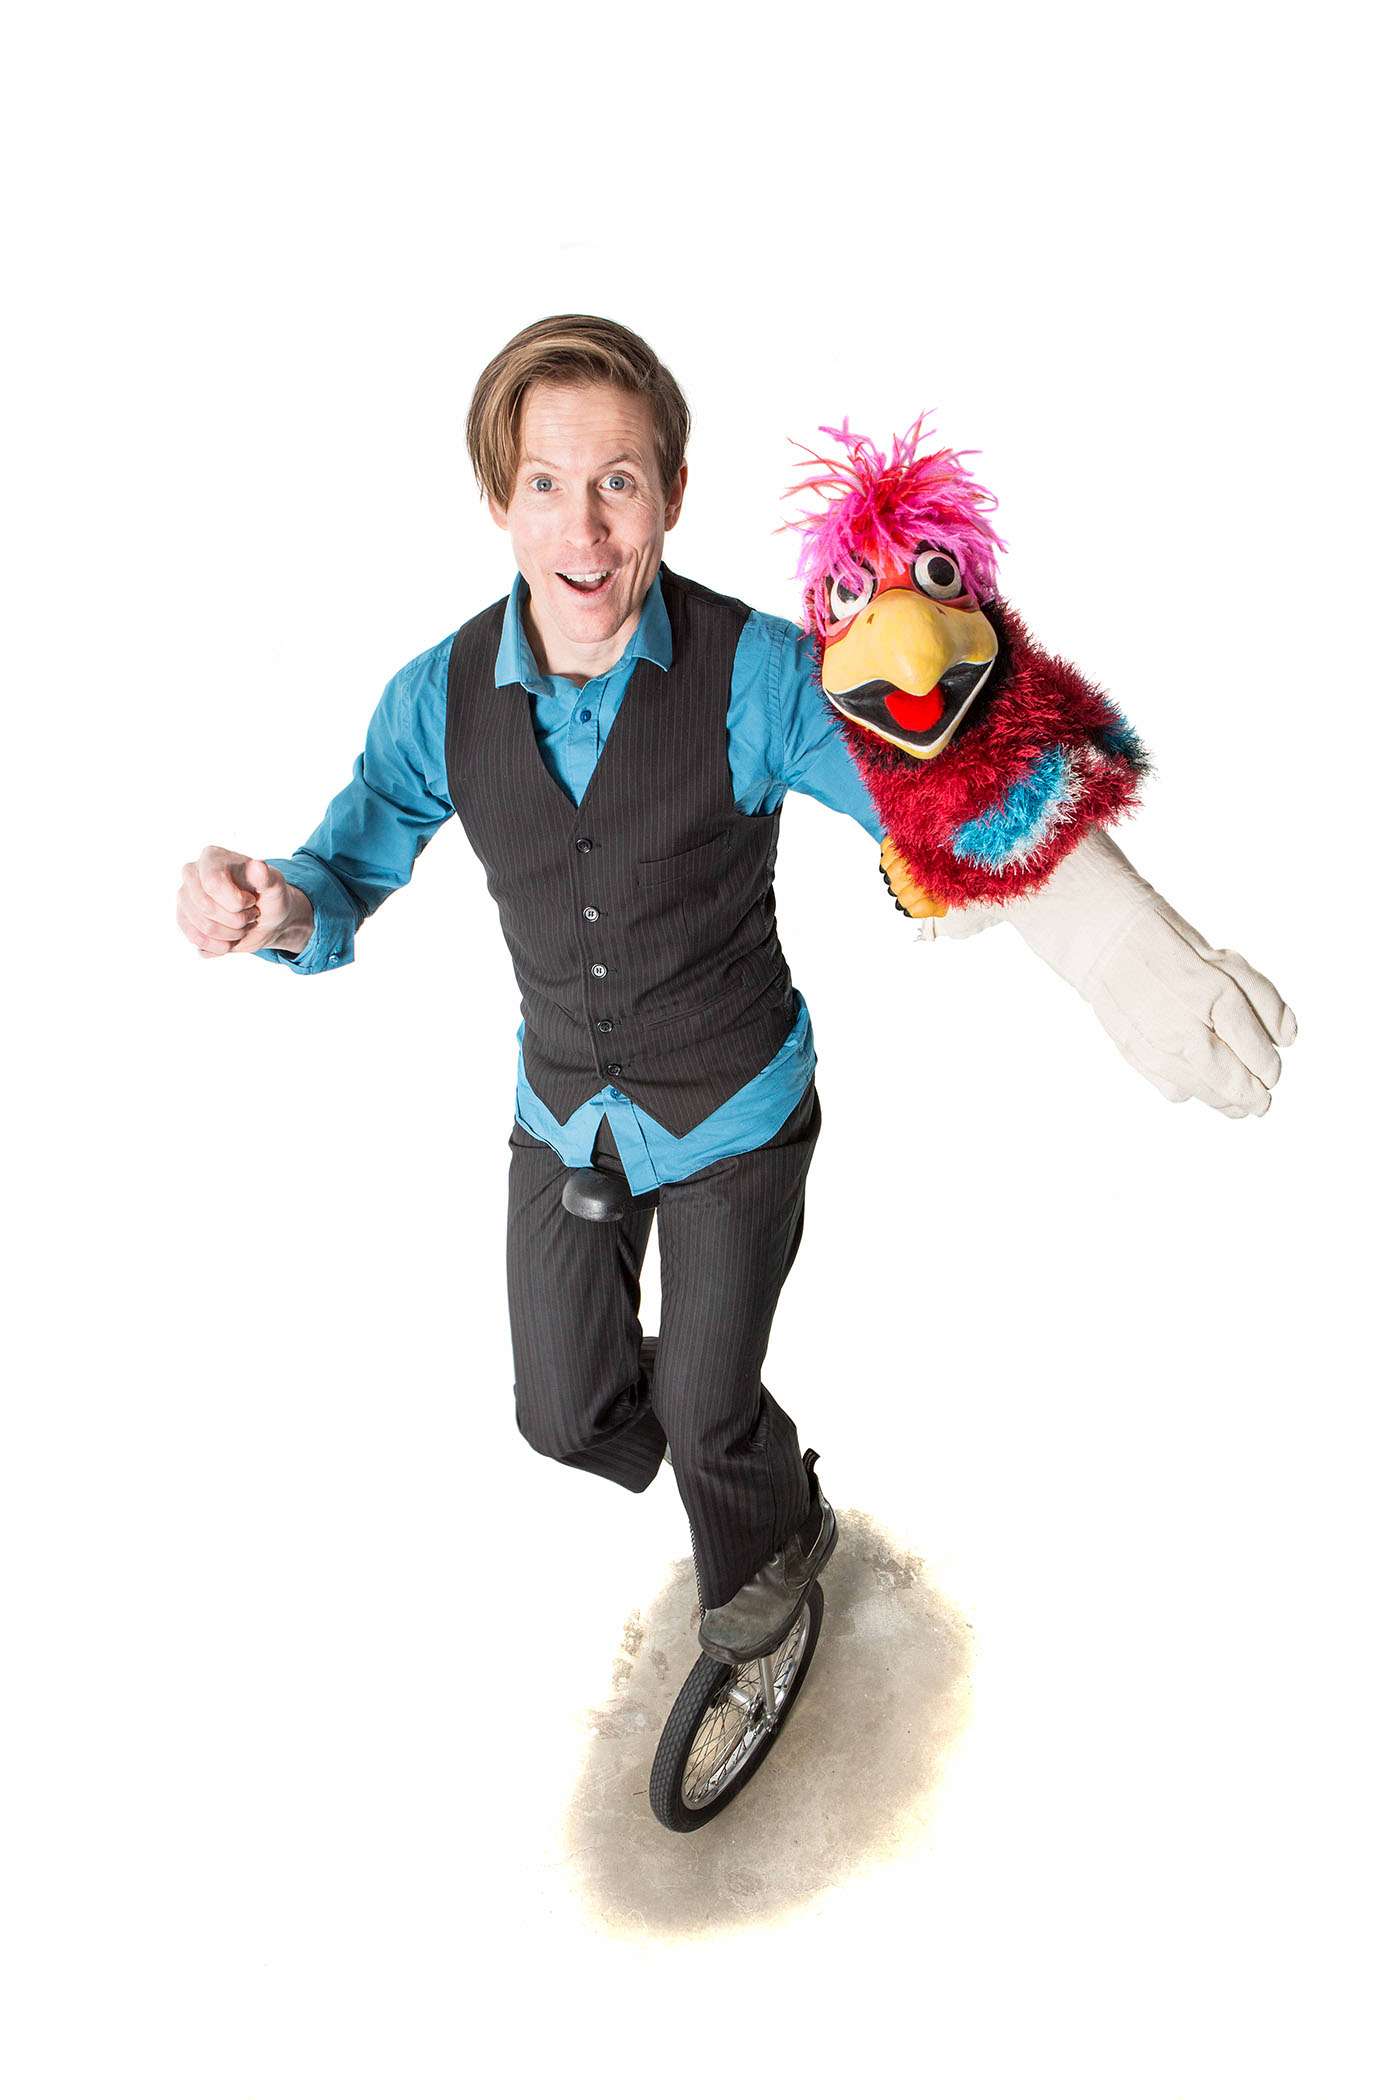 Tim on unicycle with parrot puppet